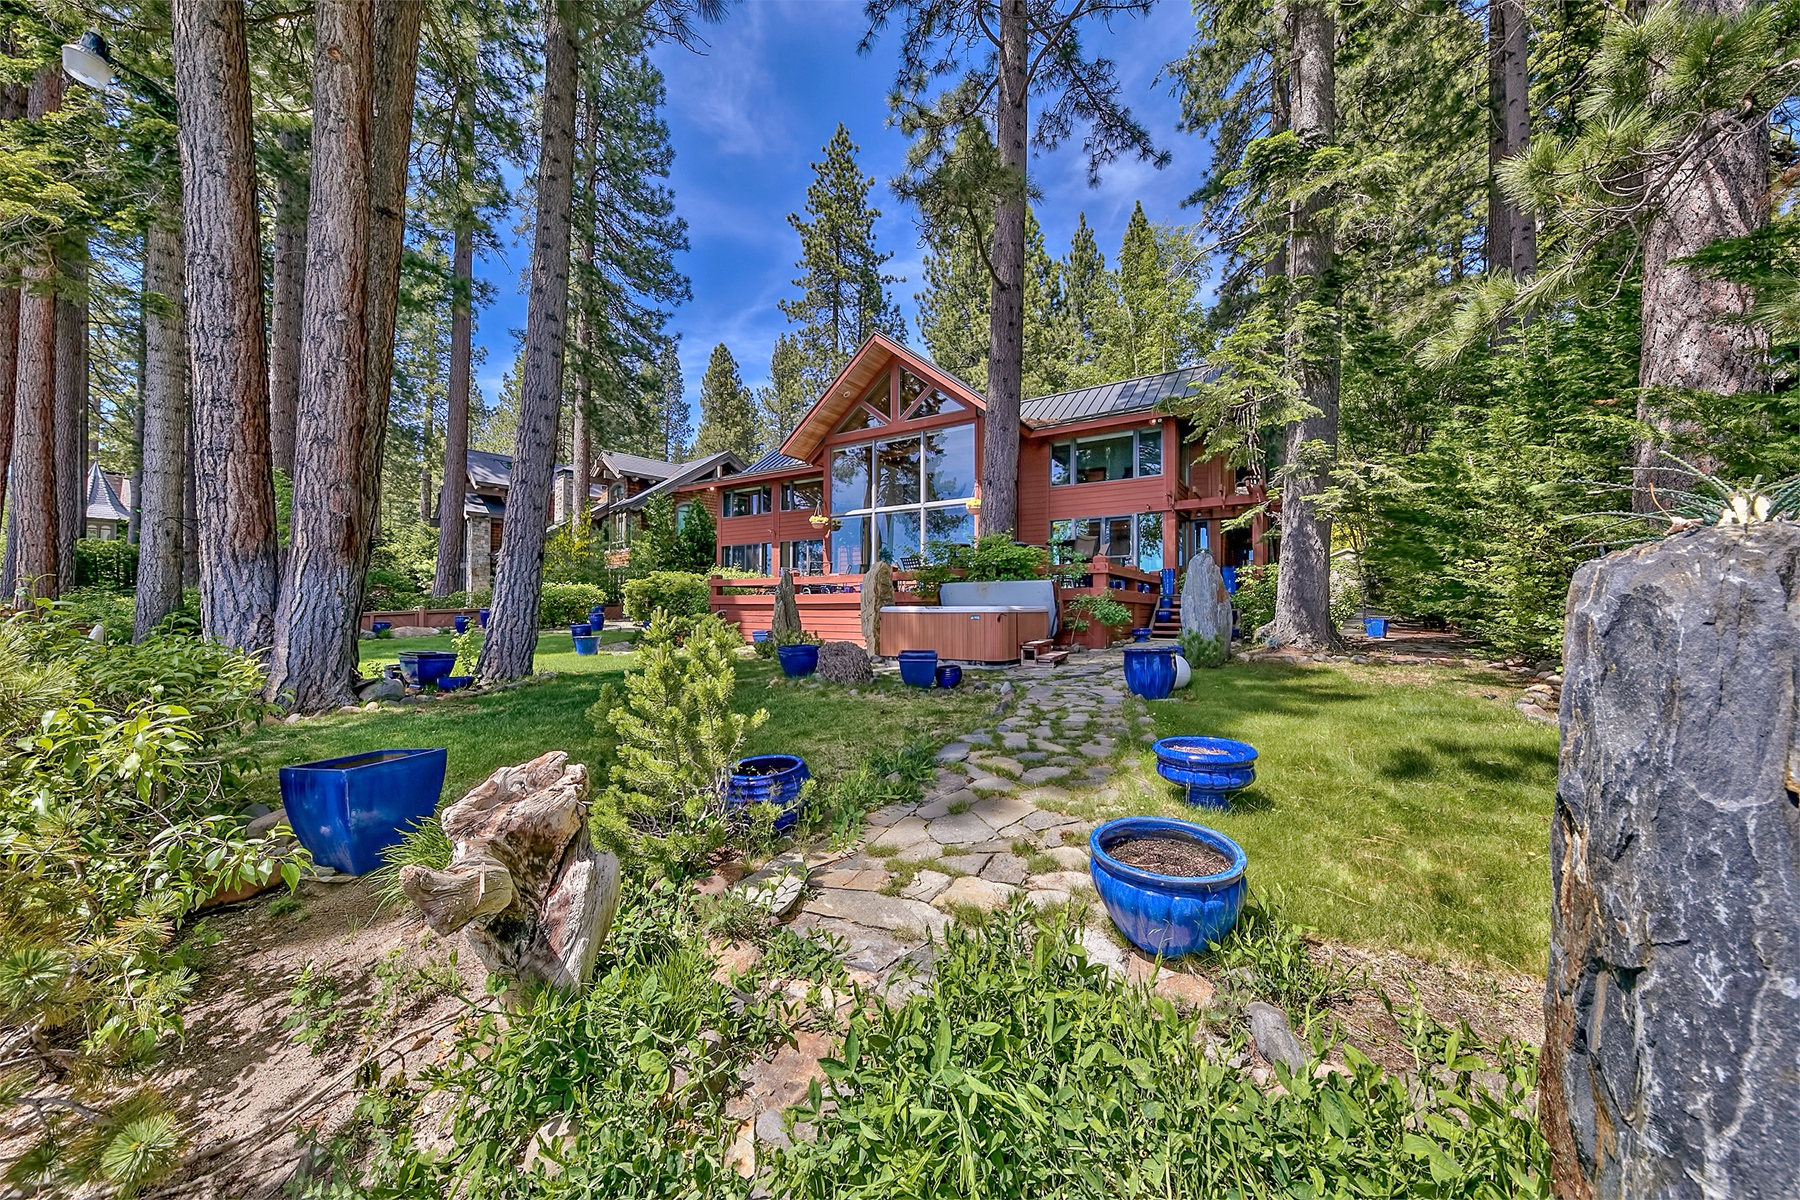 Additional photo for property listing at 863 Lakeshore Blvd. , Incline Village, Nevada 863 Lakeshore Blvd. Incline Village, Nevada 89451 United States